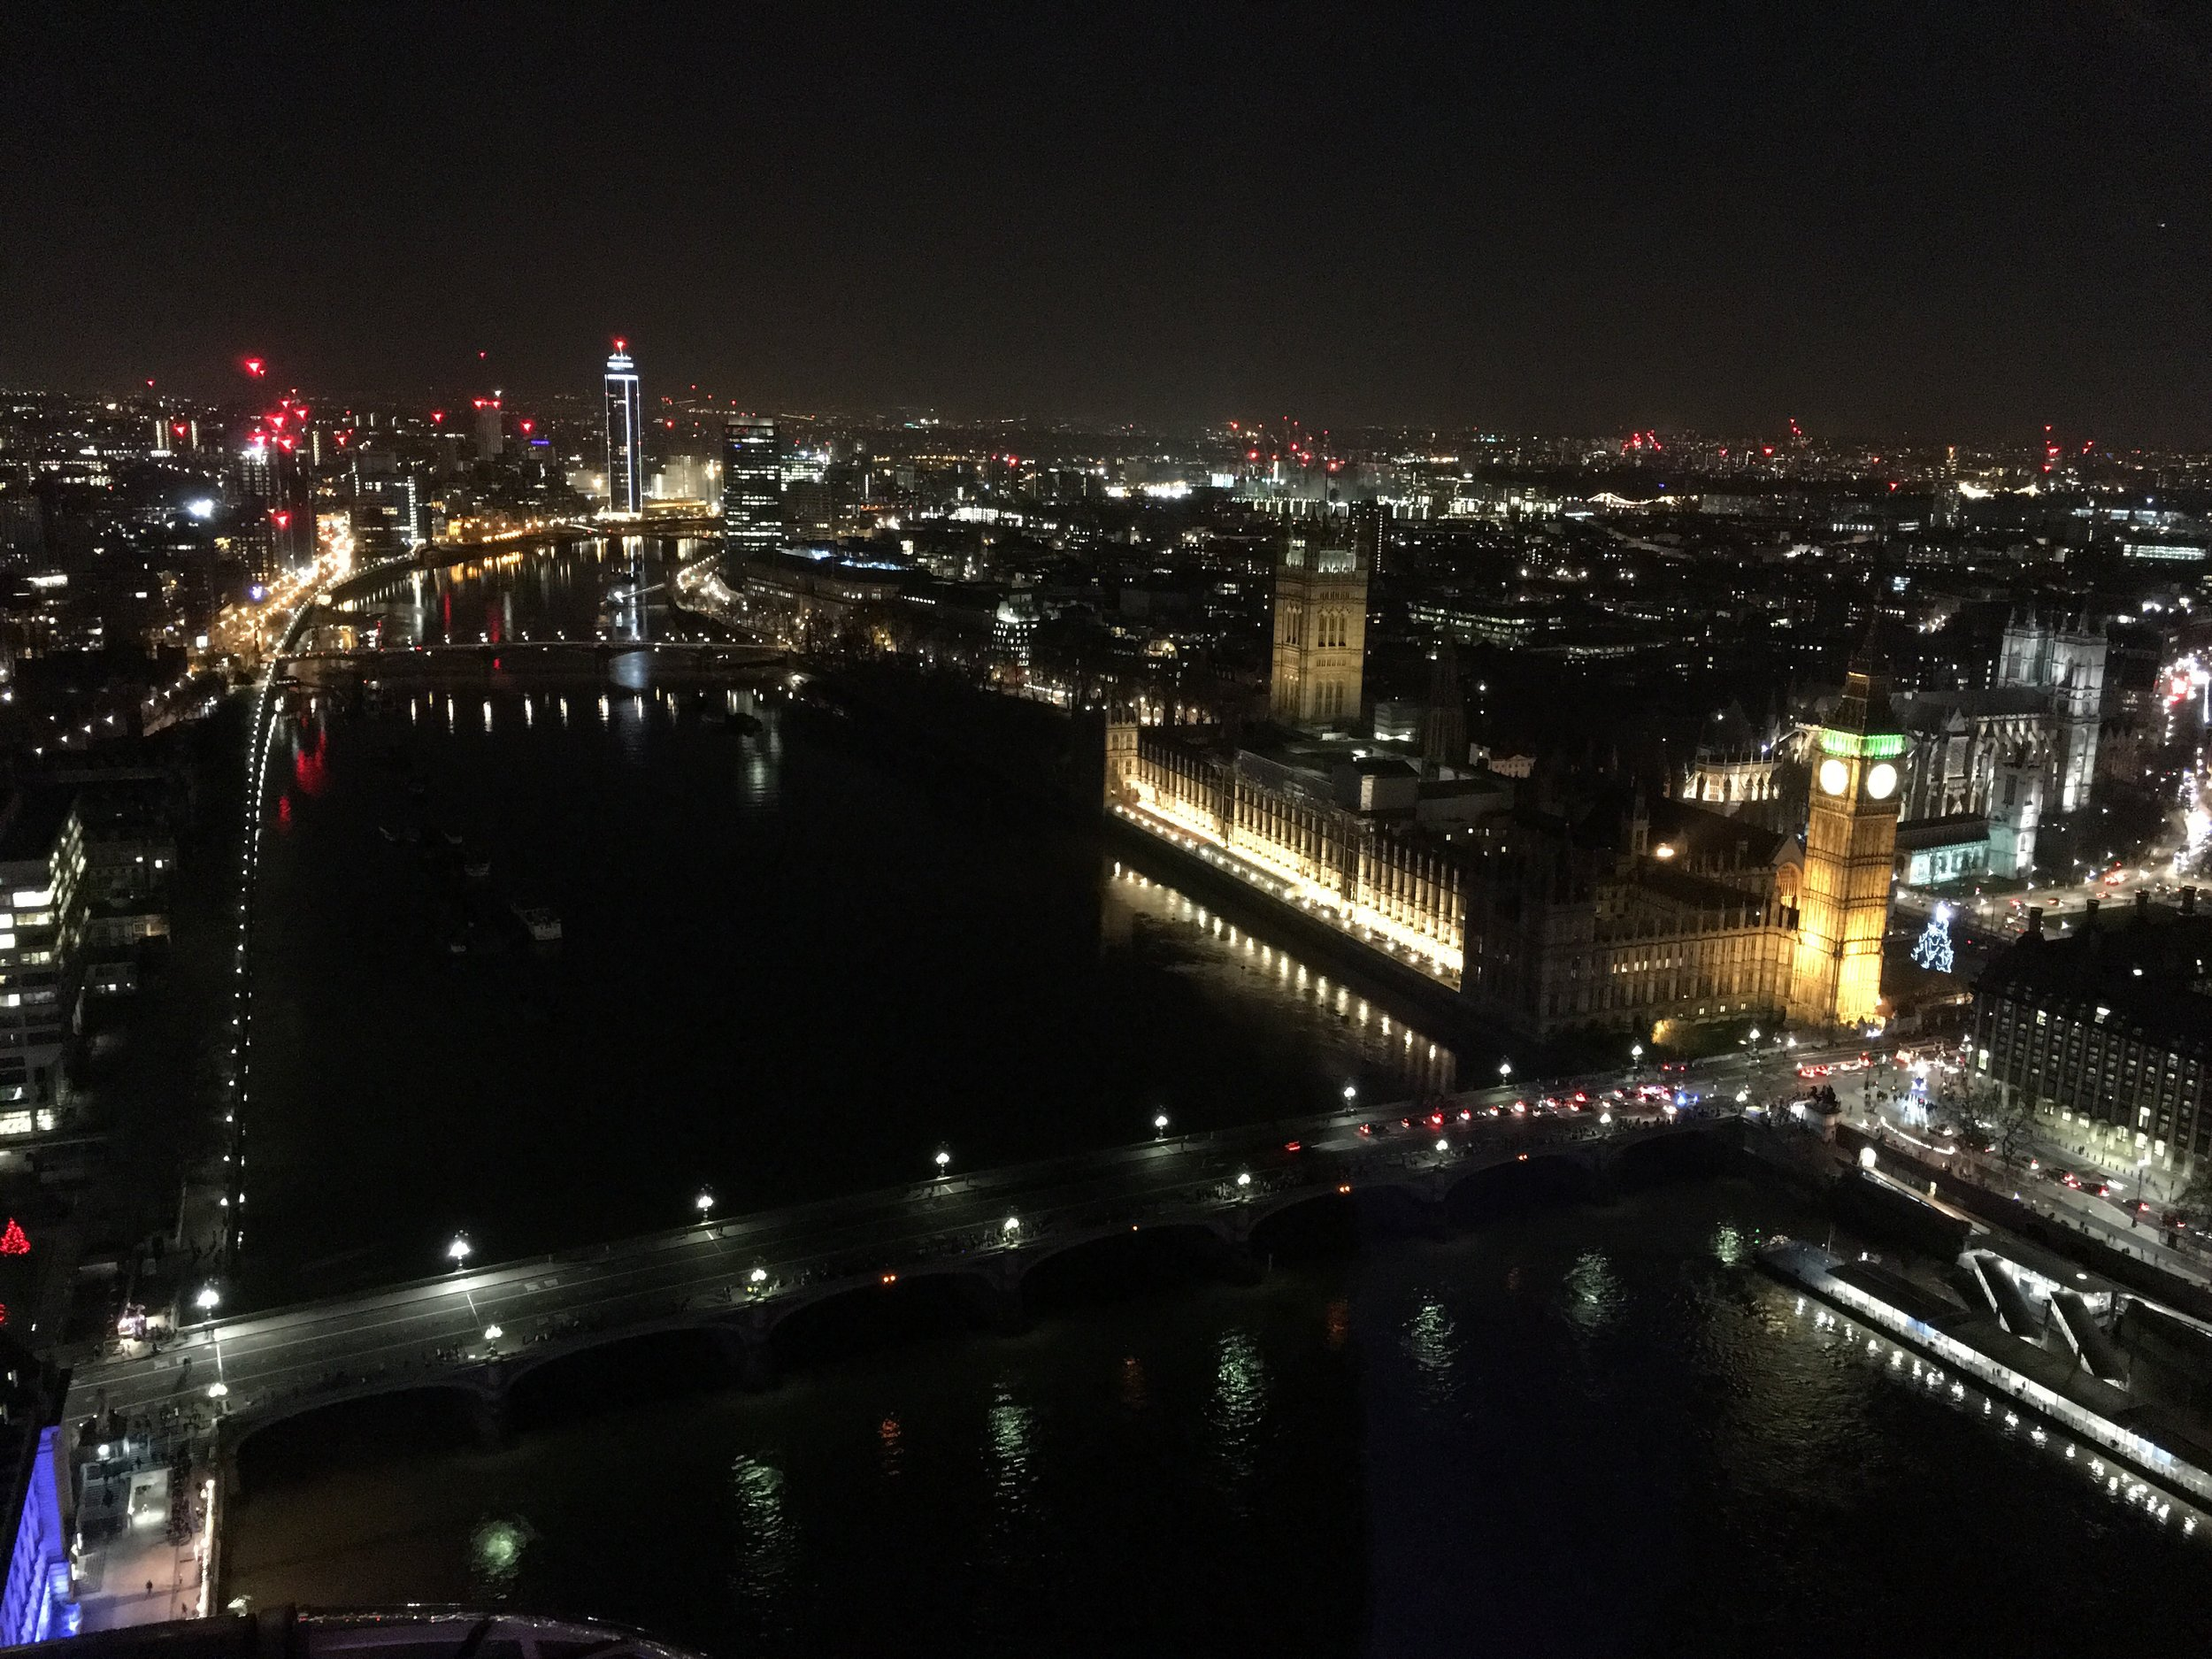 London at night, as seen from the London Eye